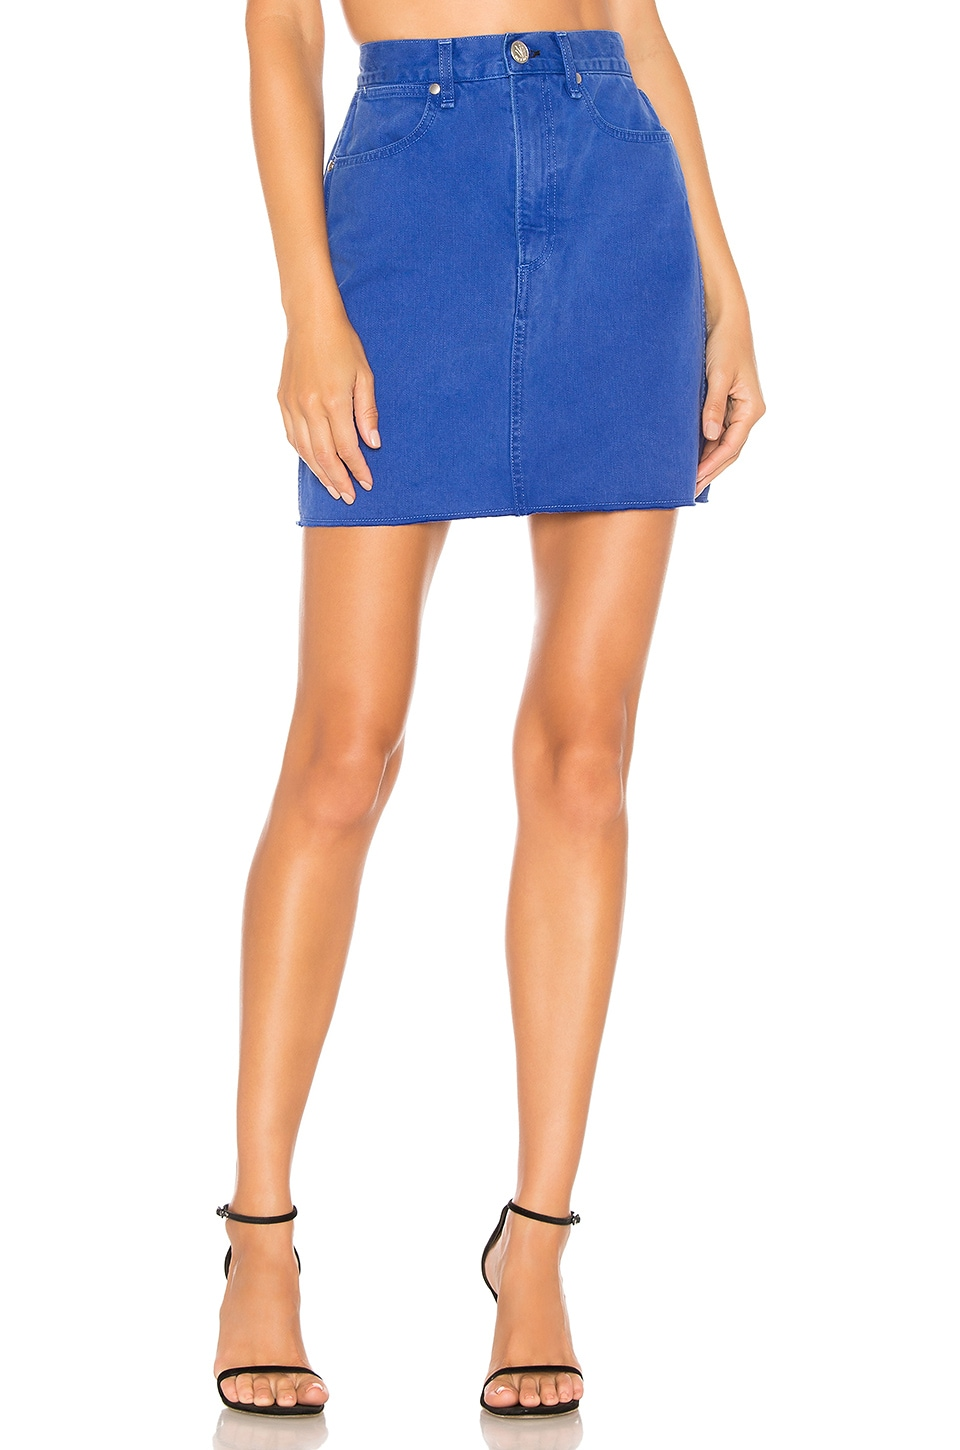 Rag & Bone Moss Skirt in Bright Blue